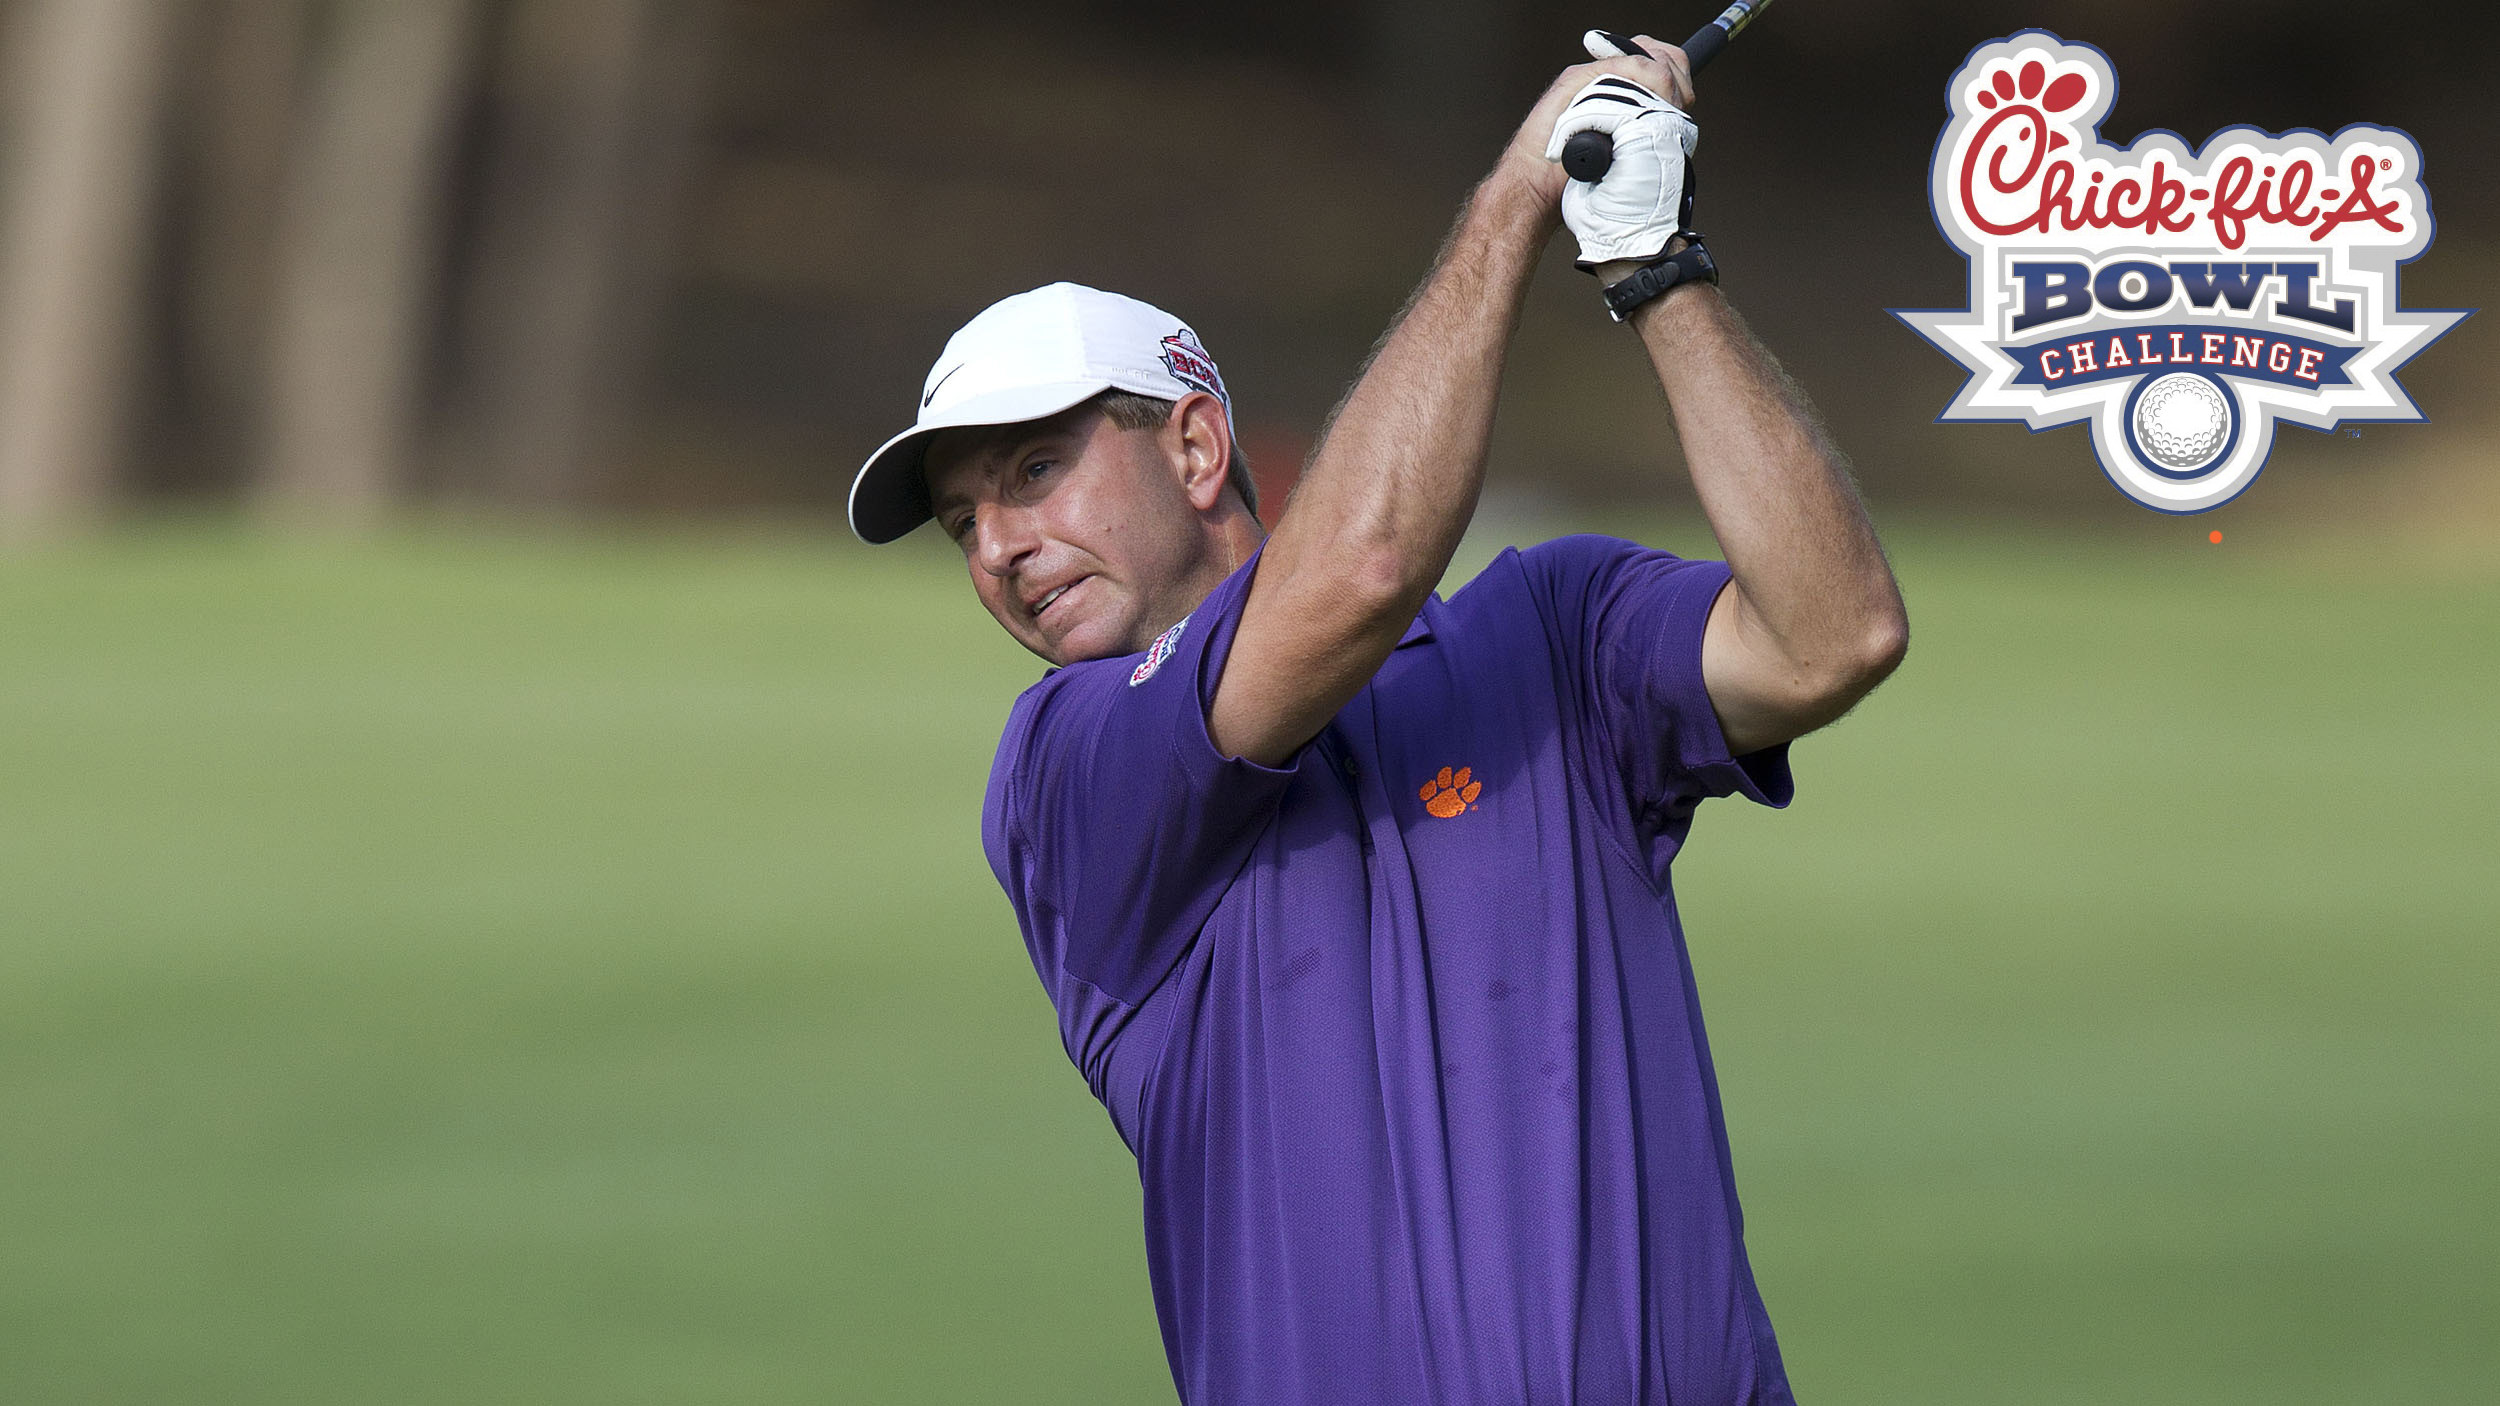 Swinney to Complete in 2013 Chick-fil-A Bowl Challenge